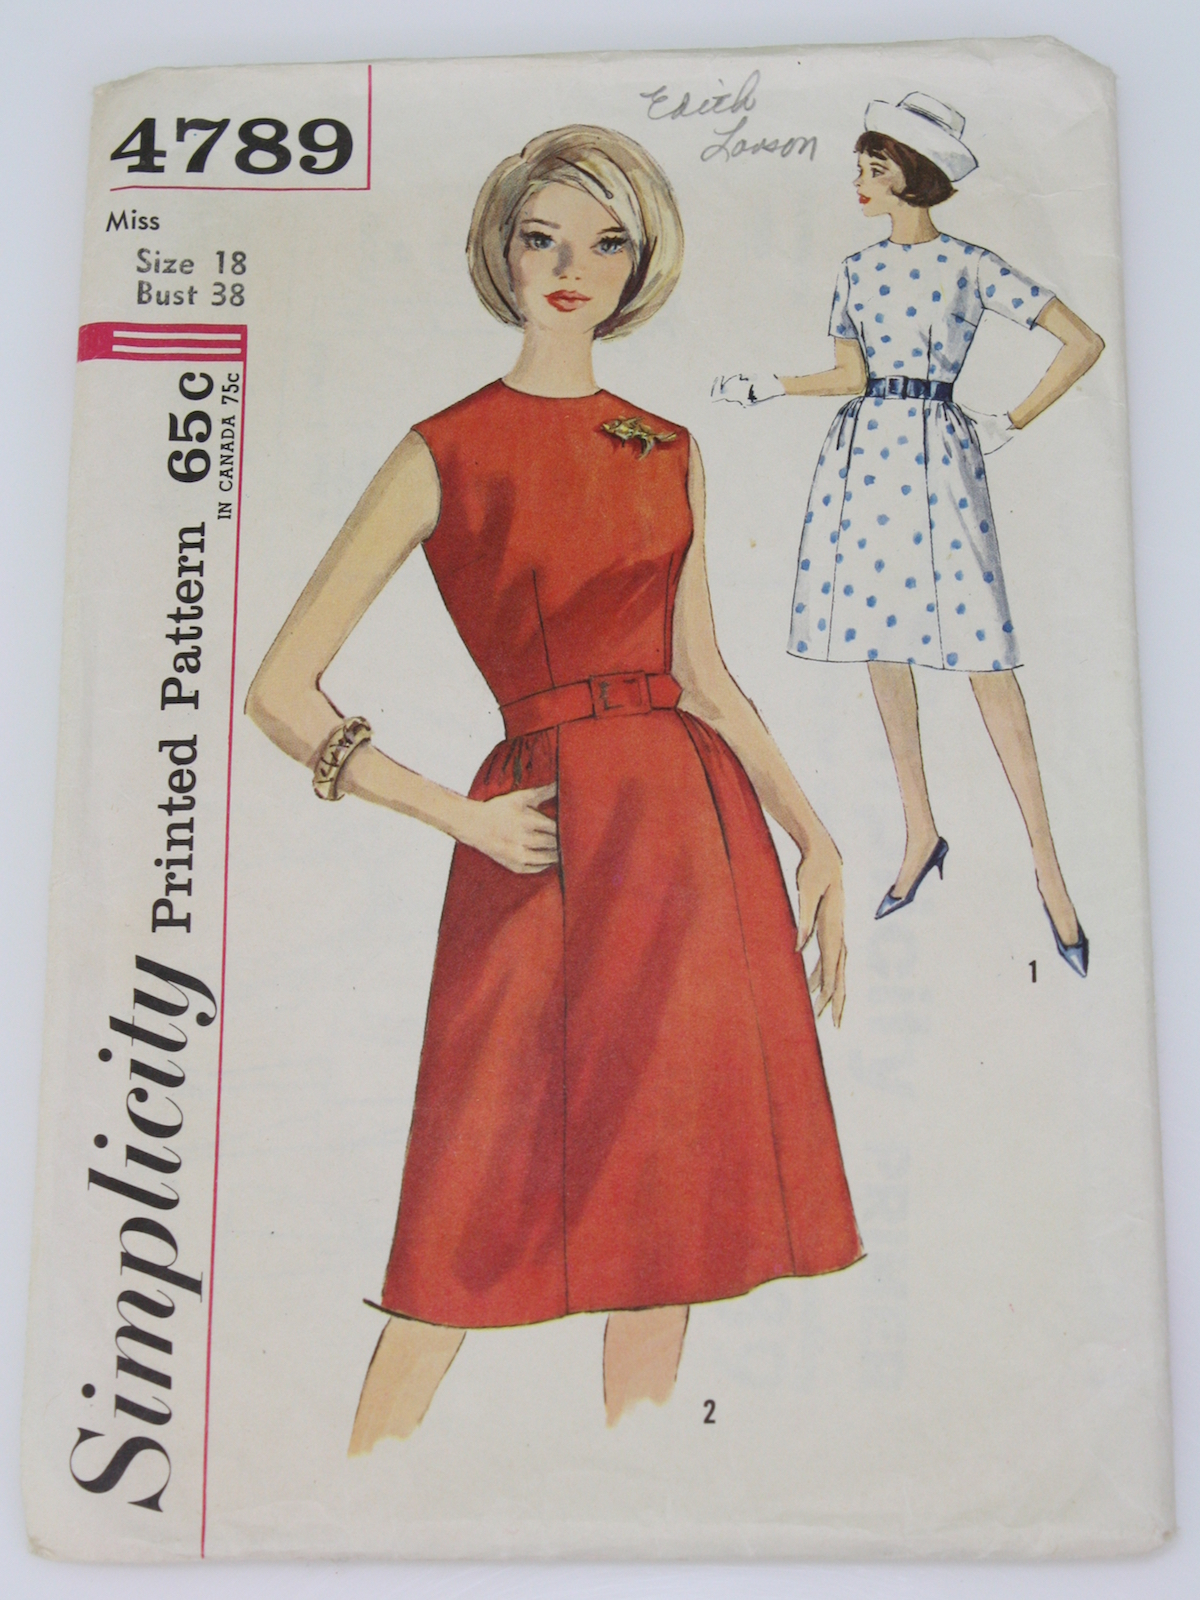 Retro 1960 S Sewing Pattern Simplicity 4789 60s